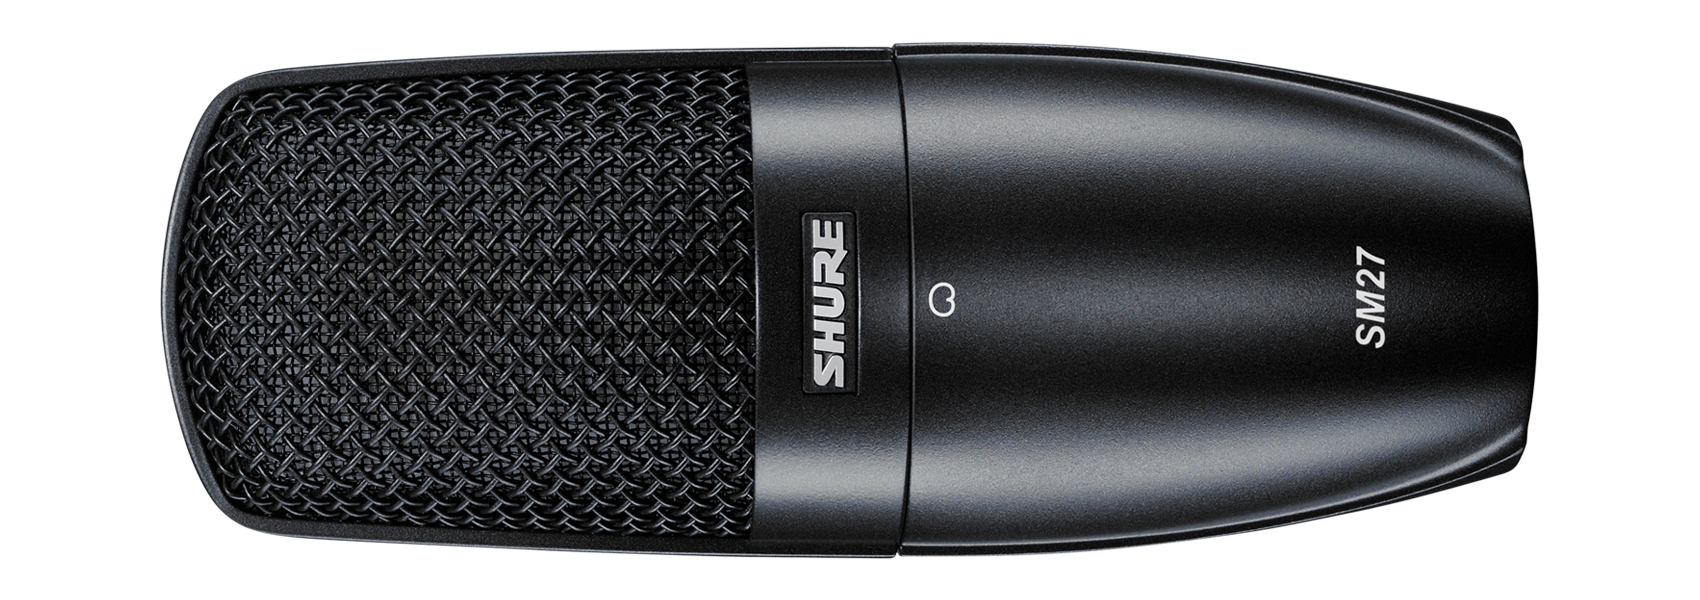 Illustration Shure Professional Large Diaphragm Condenser Microphone